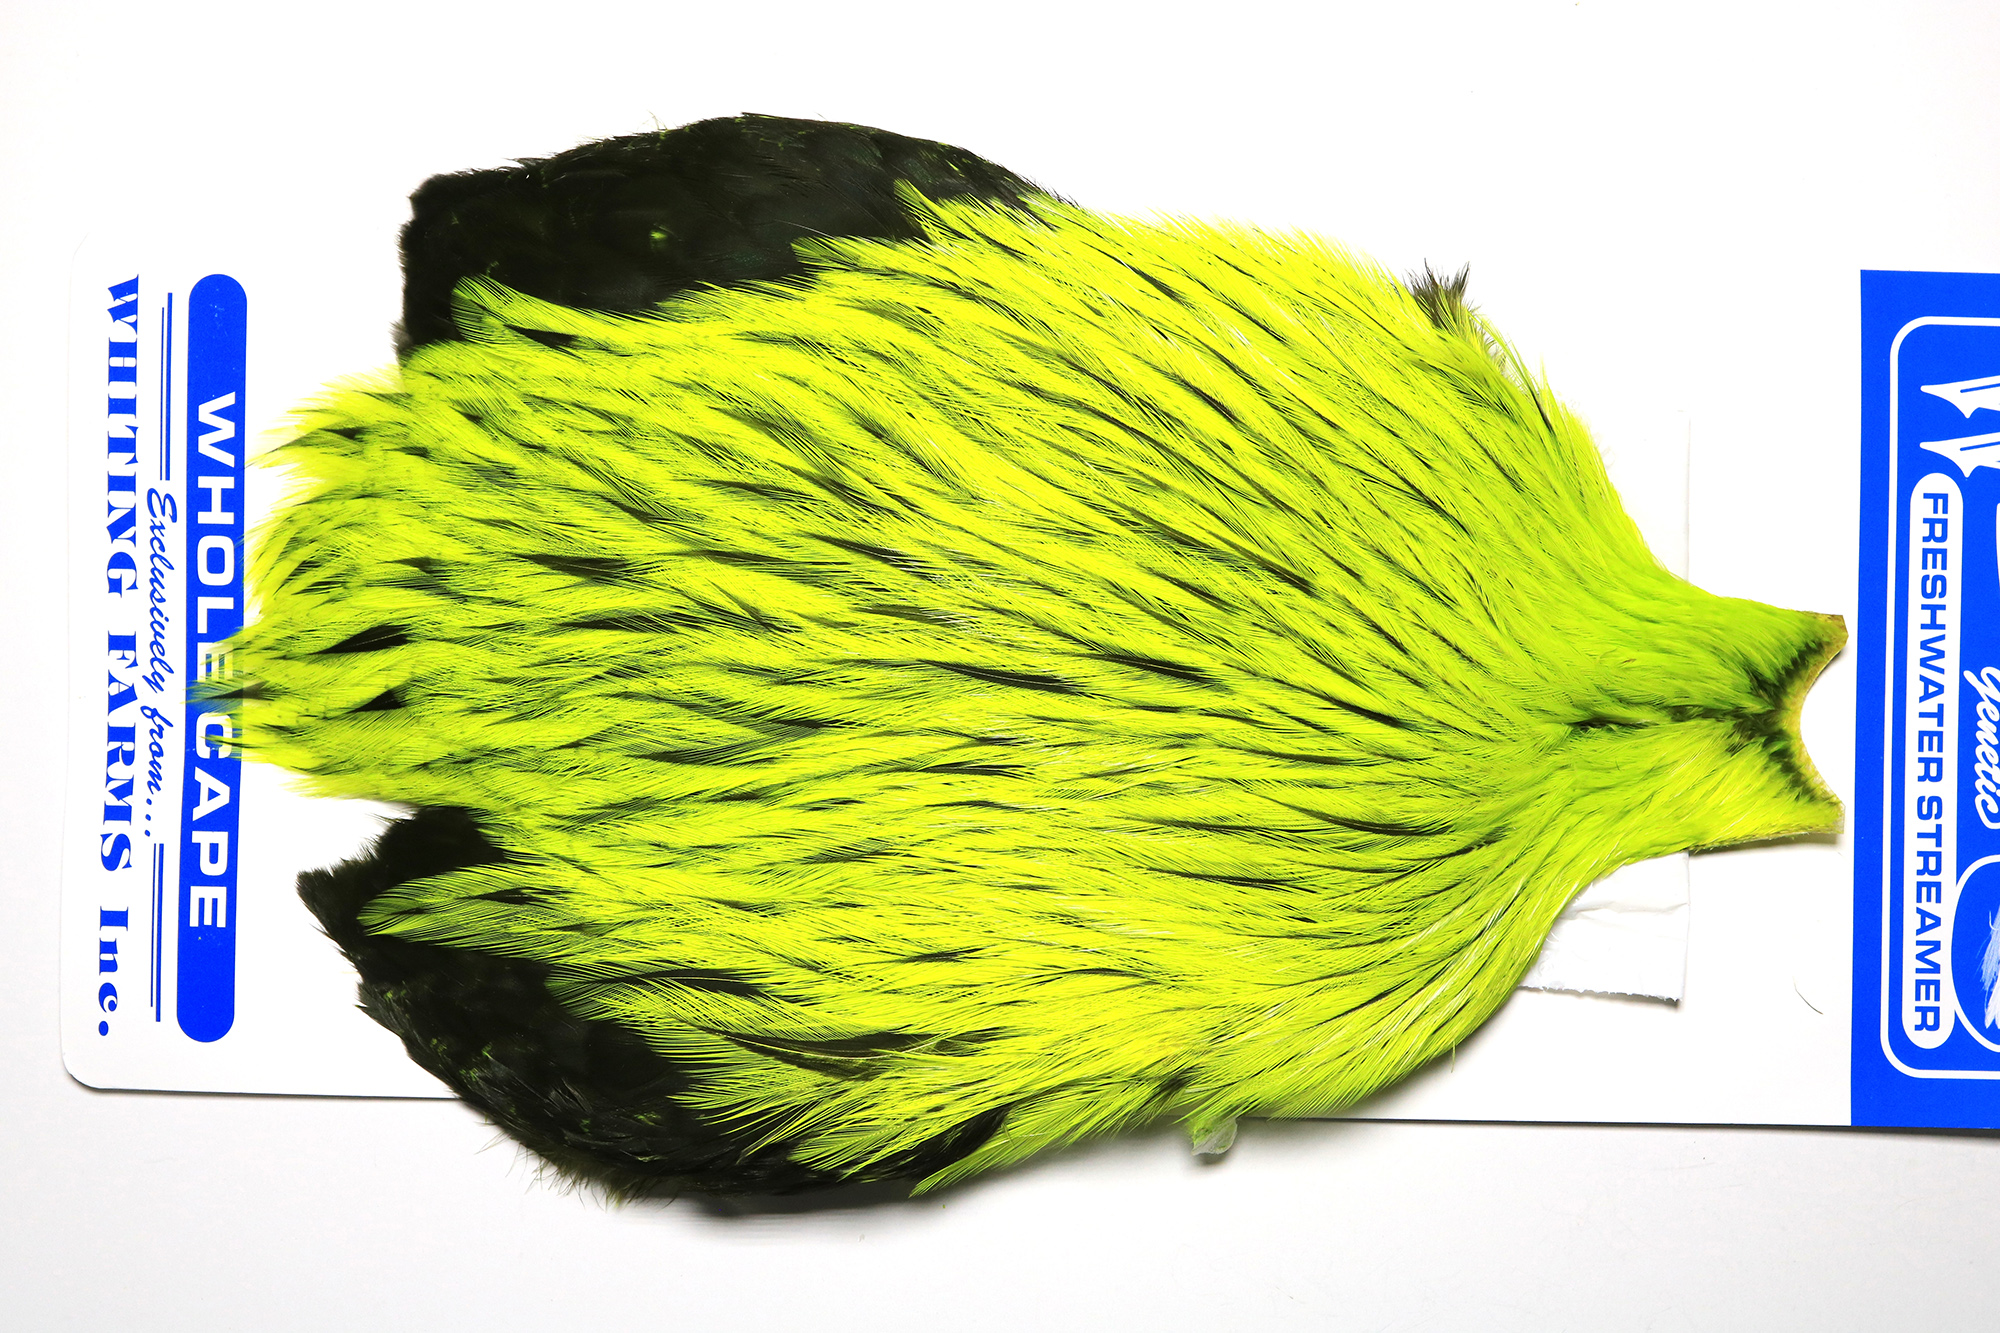 FWSC-4619 Whiting Freshwater Streamer Cape Badger dyed Flour. Yellow Chartr.